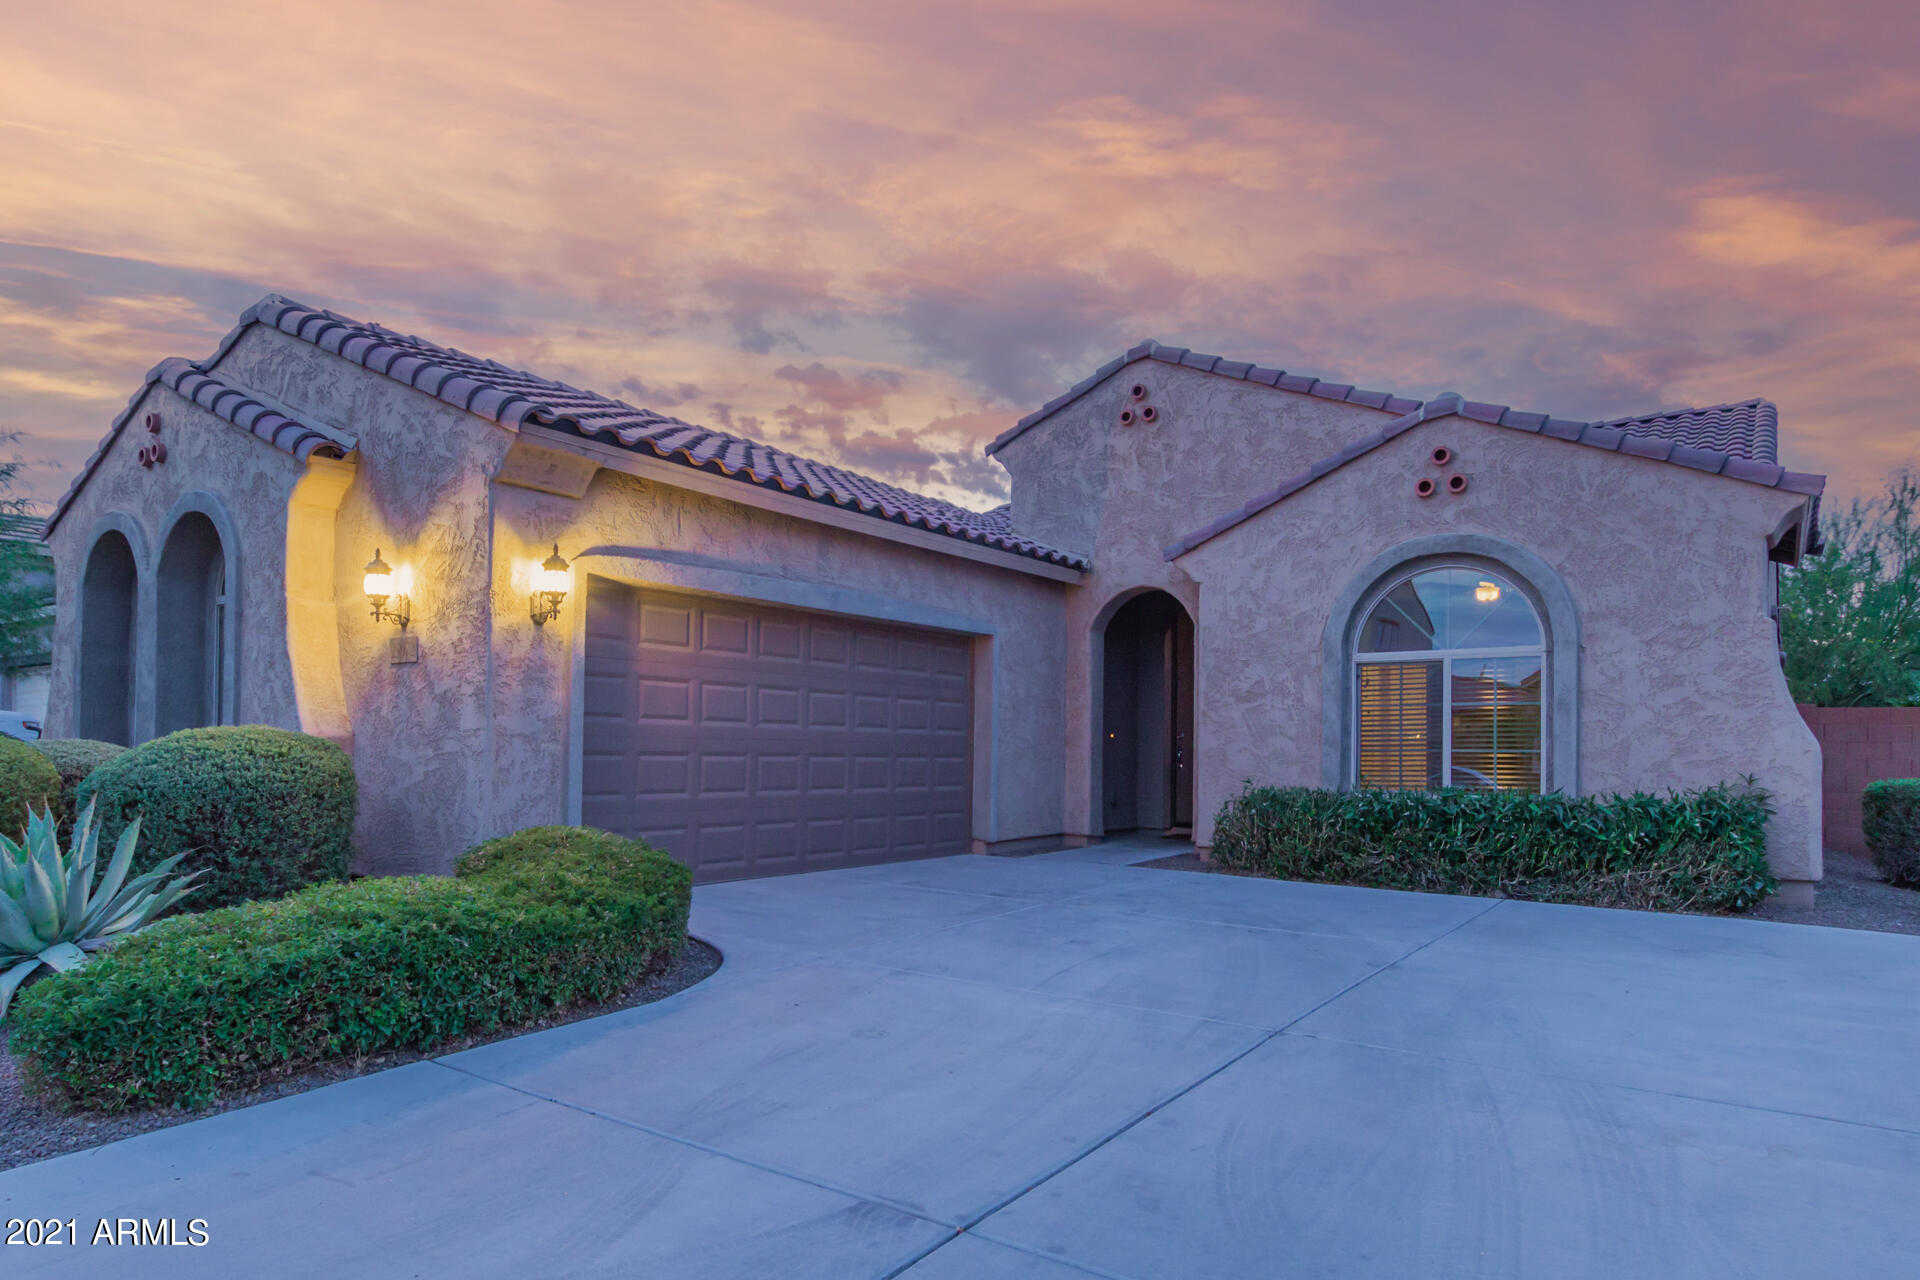 $375,000 - 2Br/2Ba - Home for Sale in Festival Foothills Phase 1, Buckeye